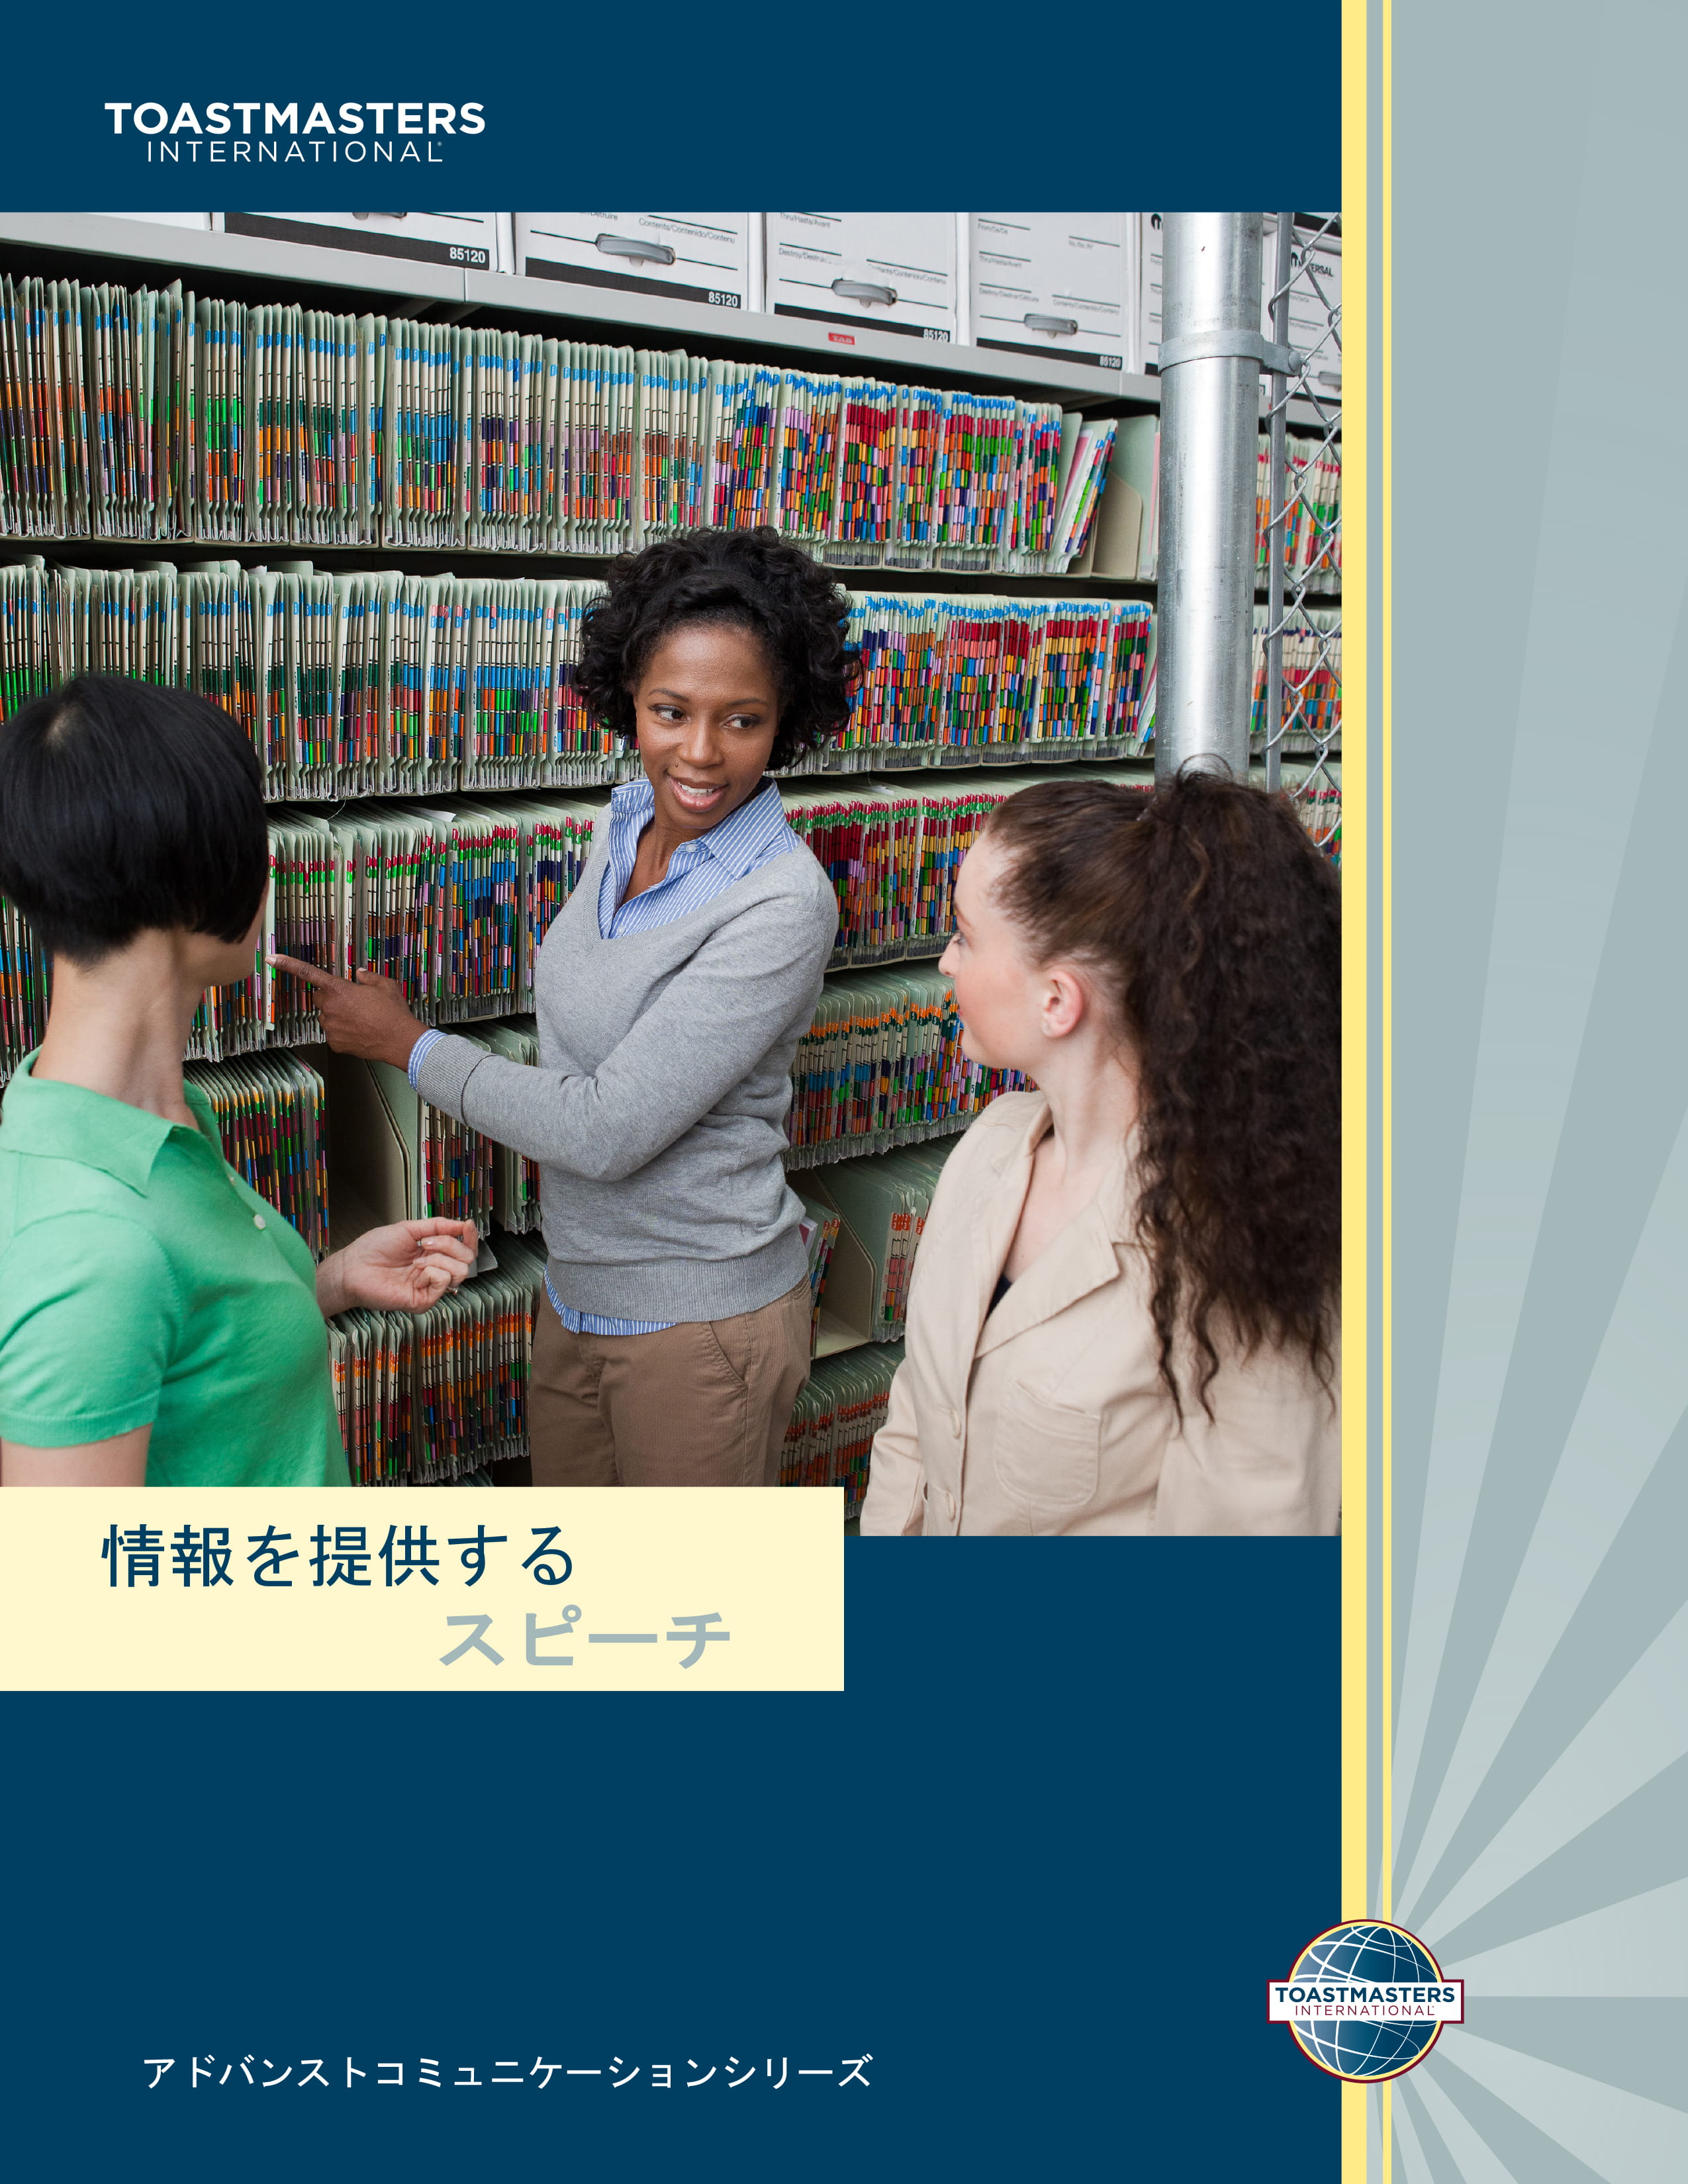 Speaking to Inform (Japanese)